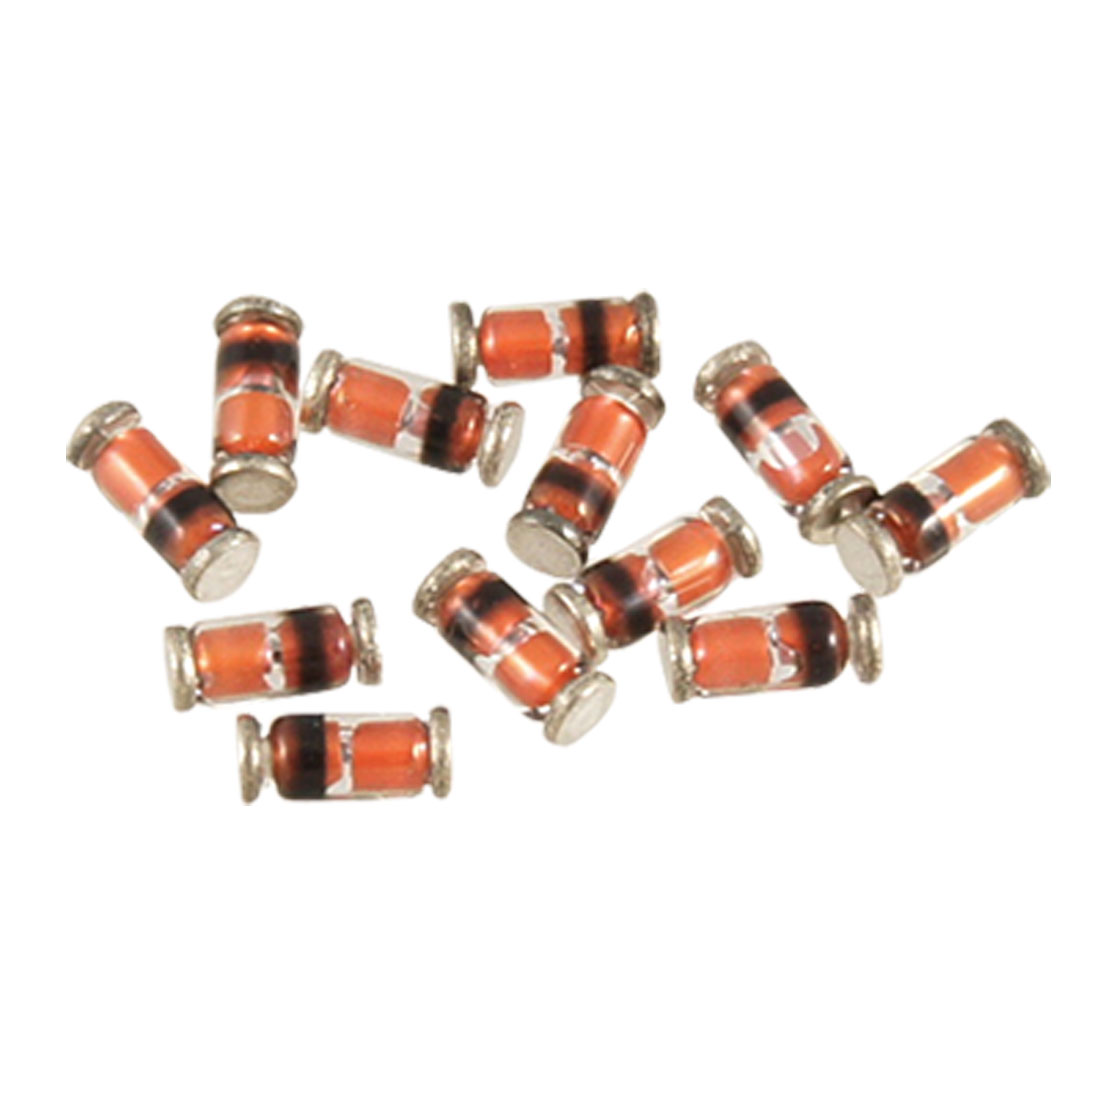 12 Pcs High Speed LL4148 Fast Switching SMD Diodes